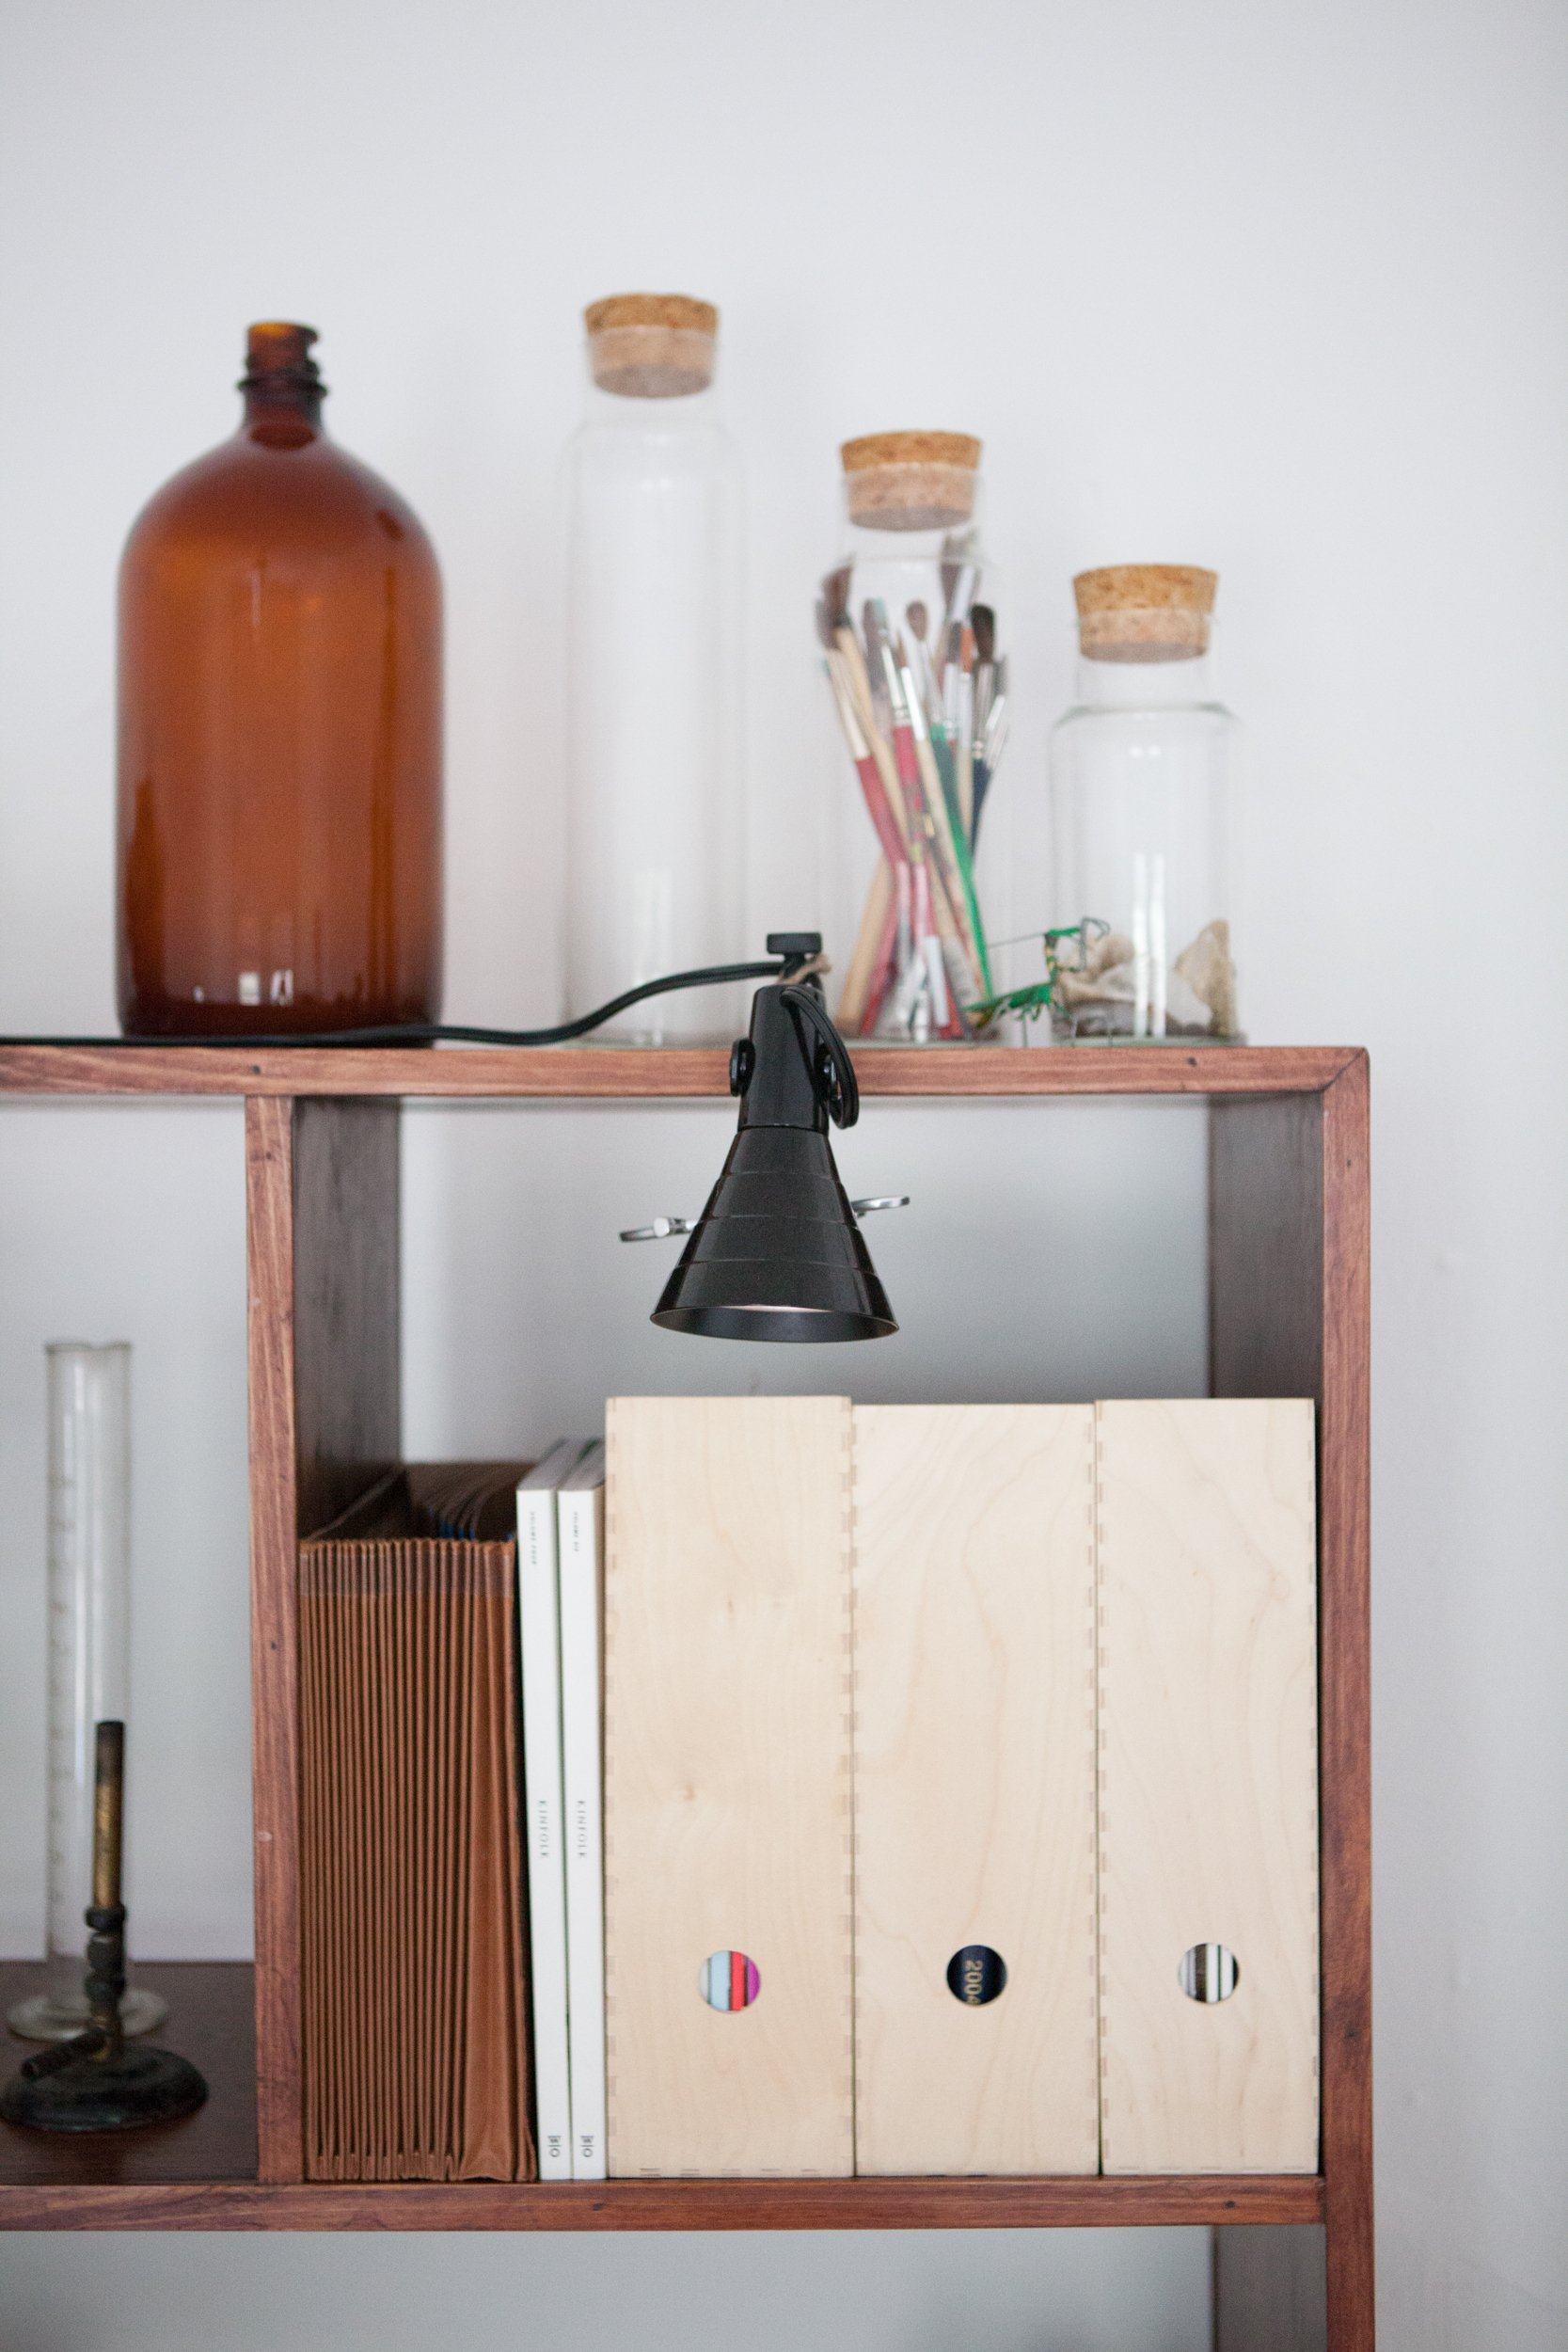 15 Clever & Unusual Ways Magazine Holders Can Organize Your